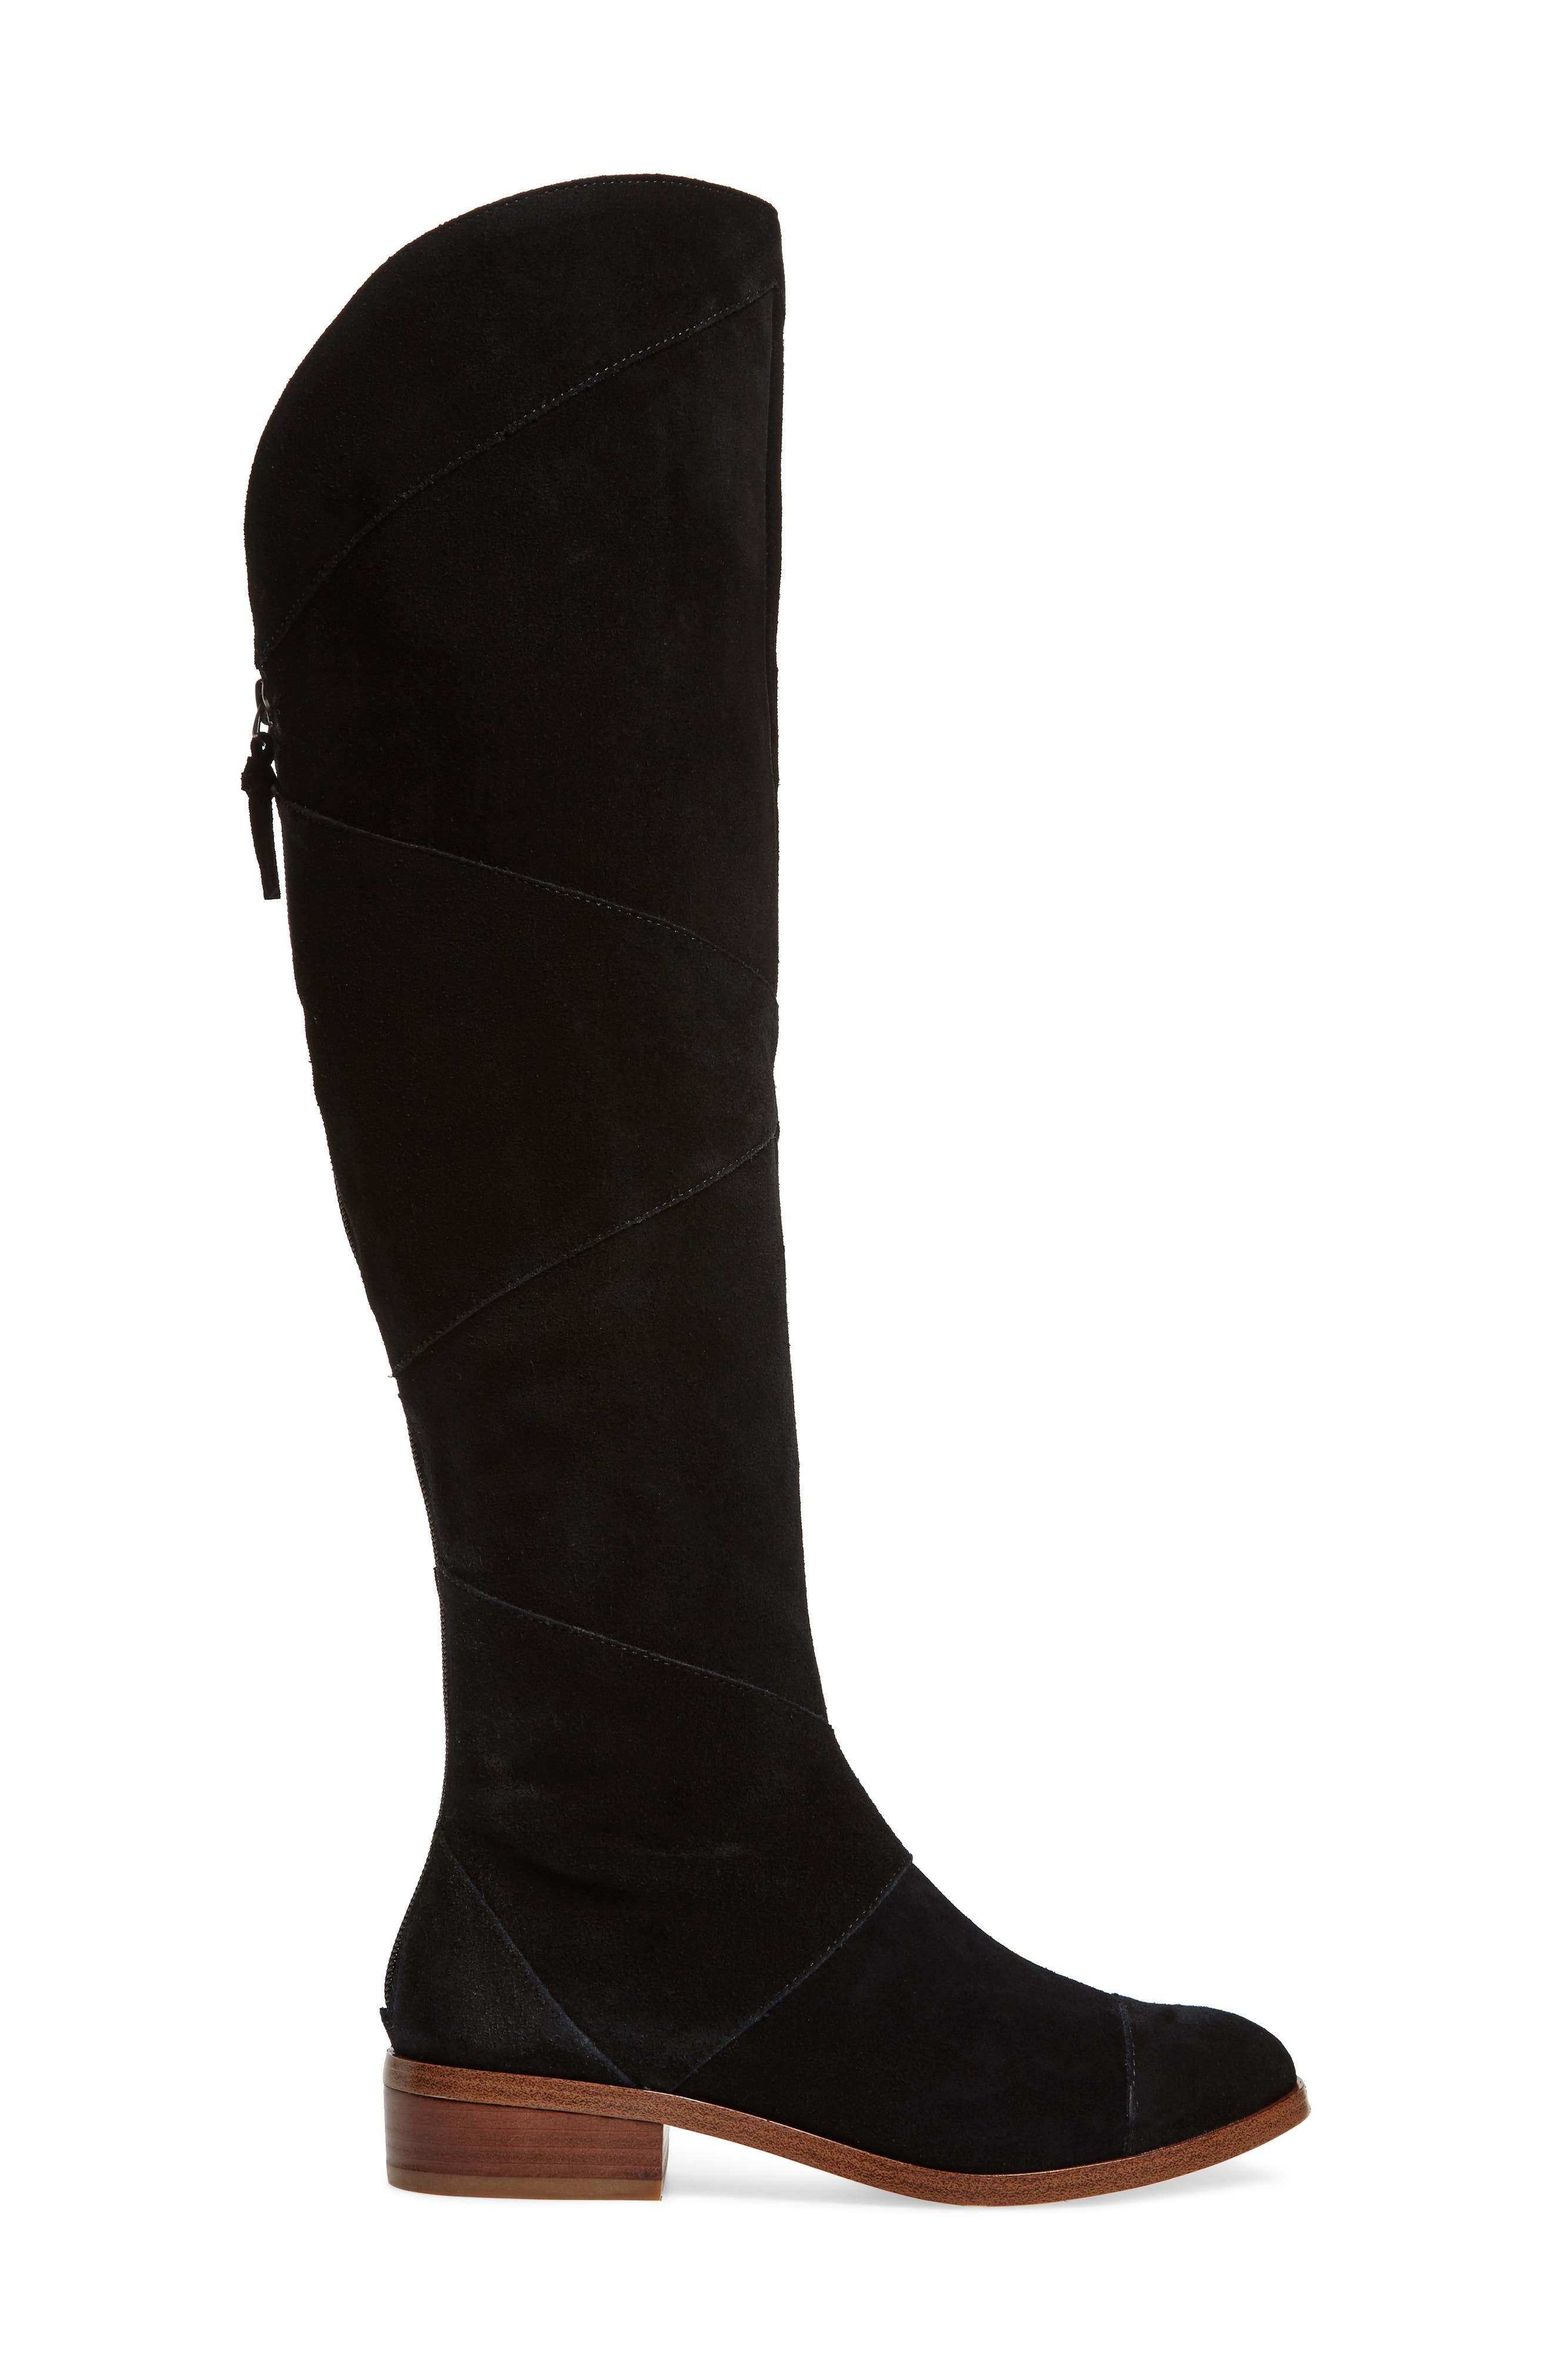 Tiff Over the Knee Boot,                             Alternate thumbnail 3, color,                             BLACK